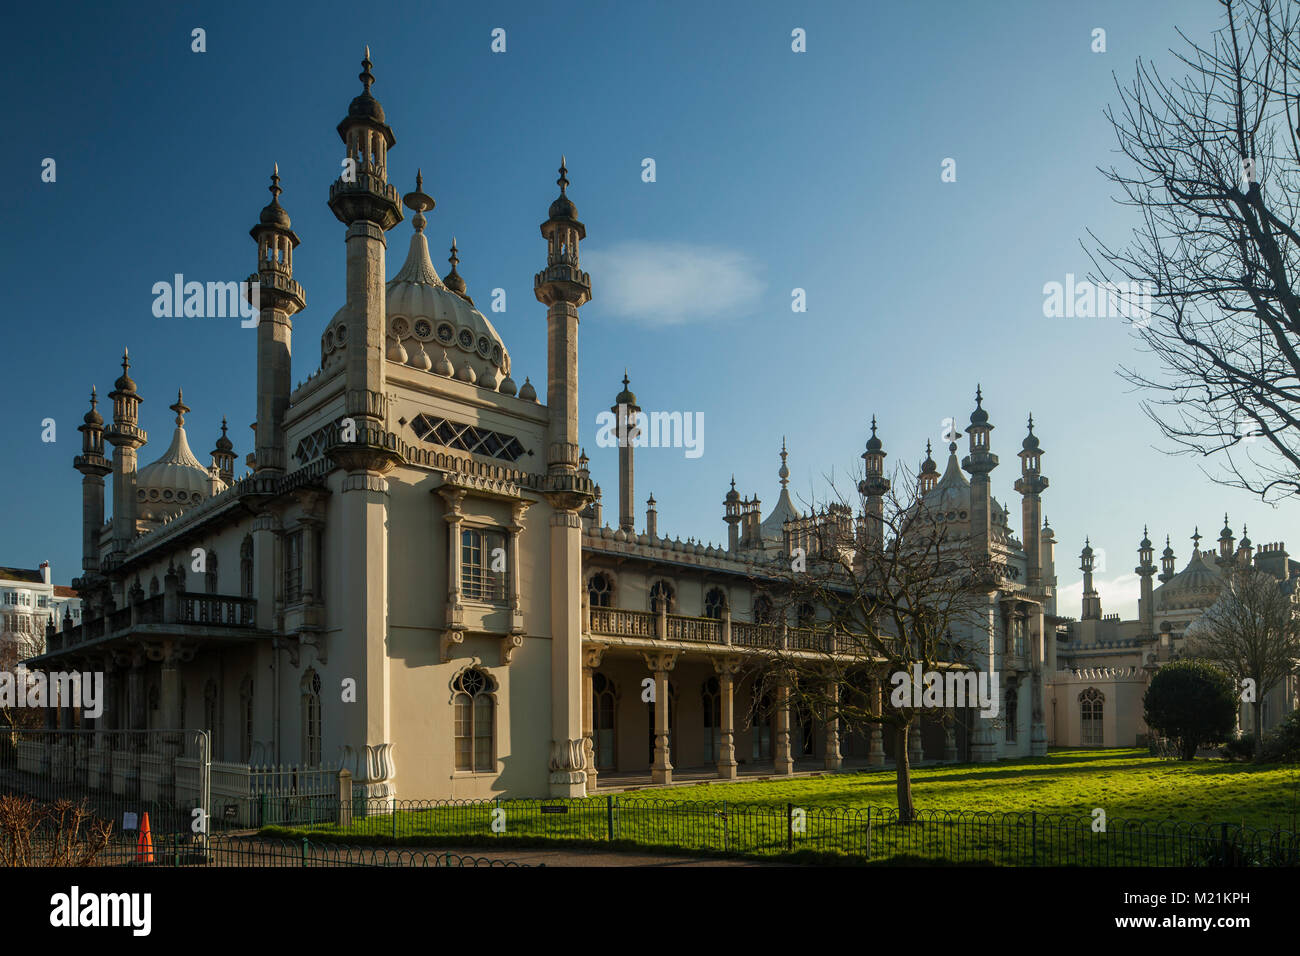 North gate at Royal Pavilion in Brighton, East Sussex, England. - Stock Image